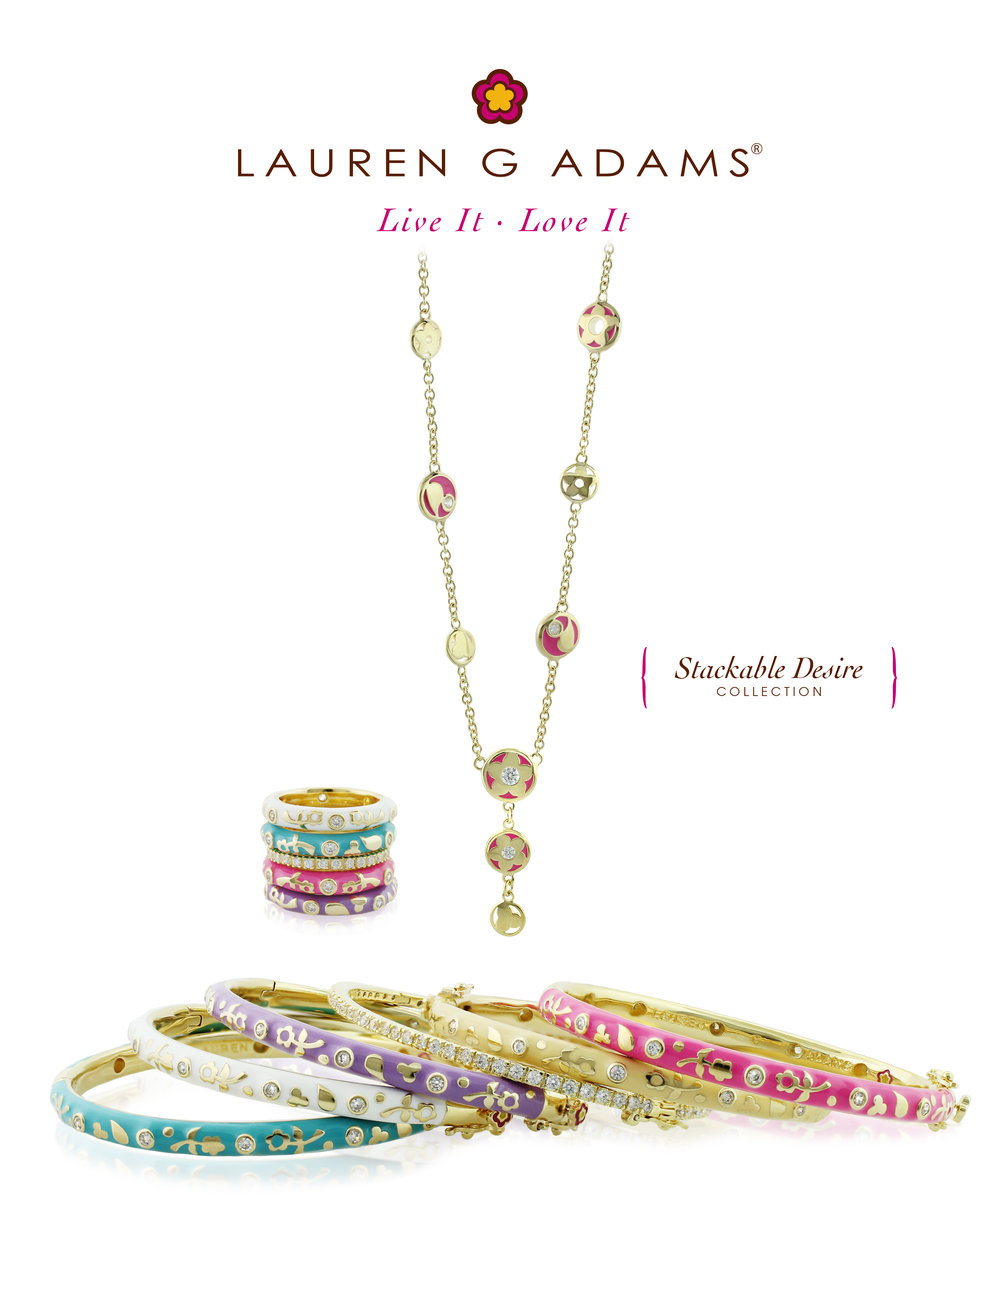 25% off lauren g adams!